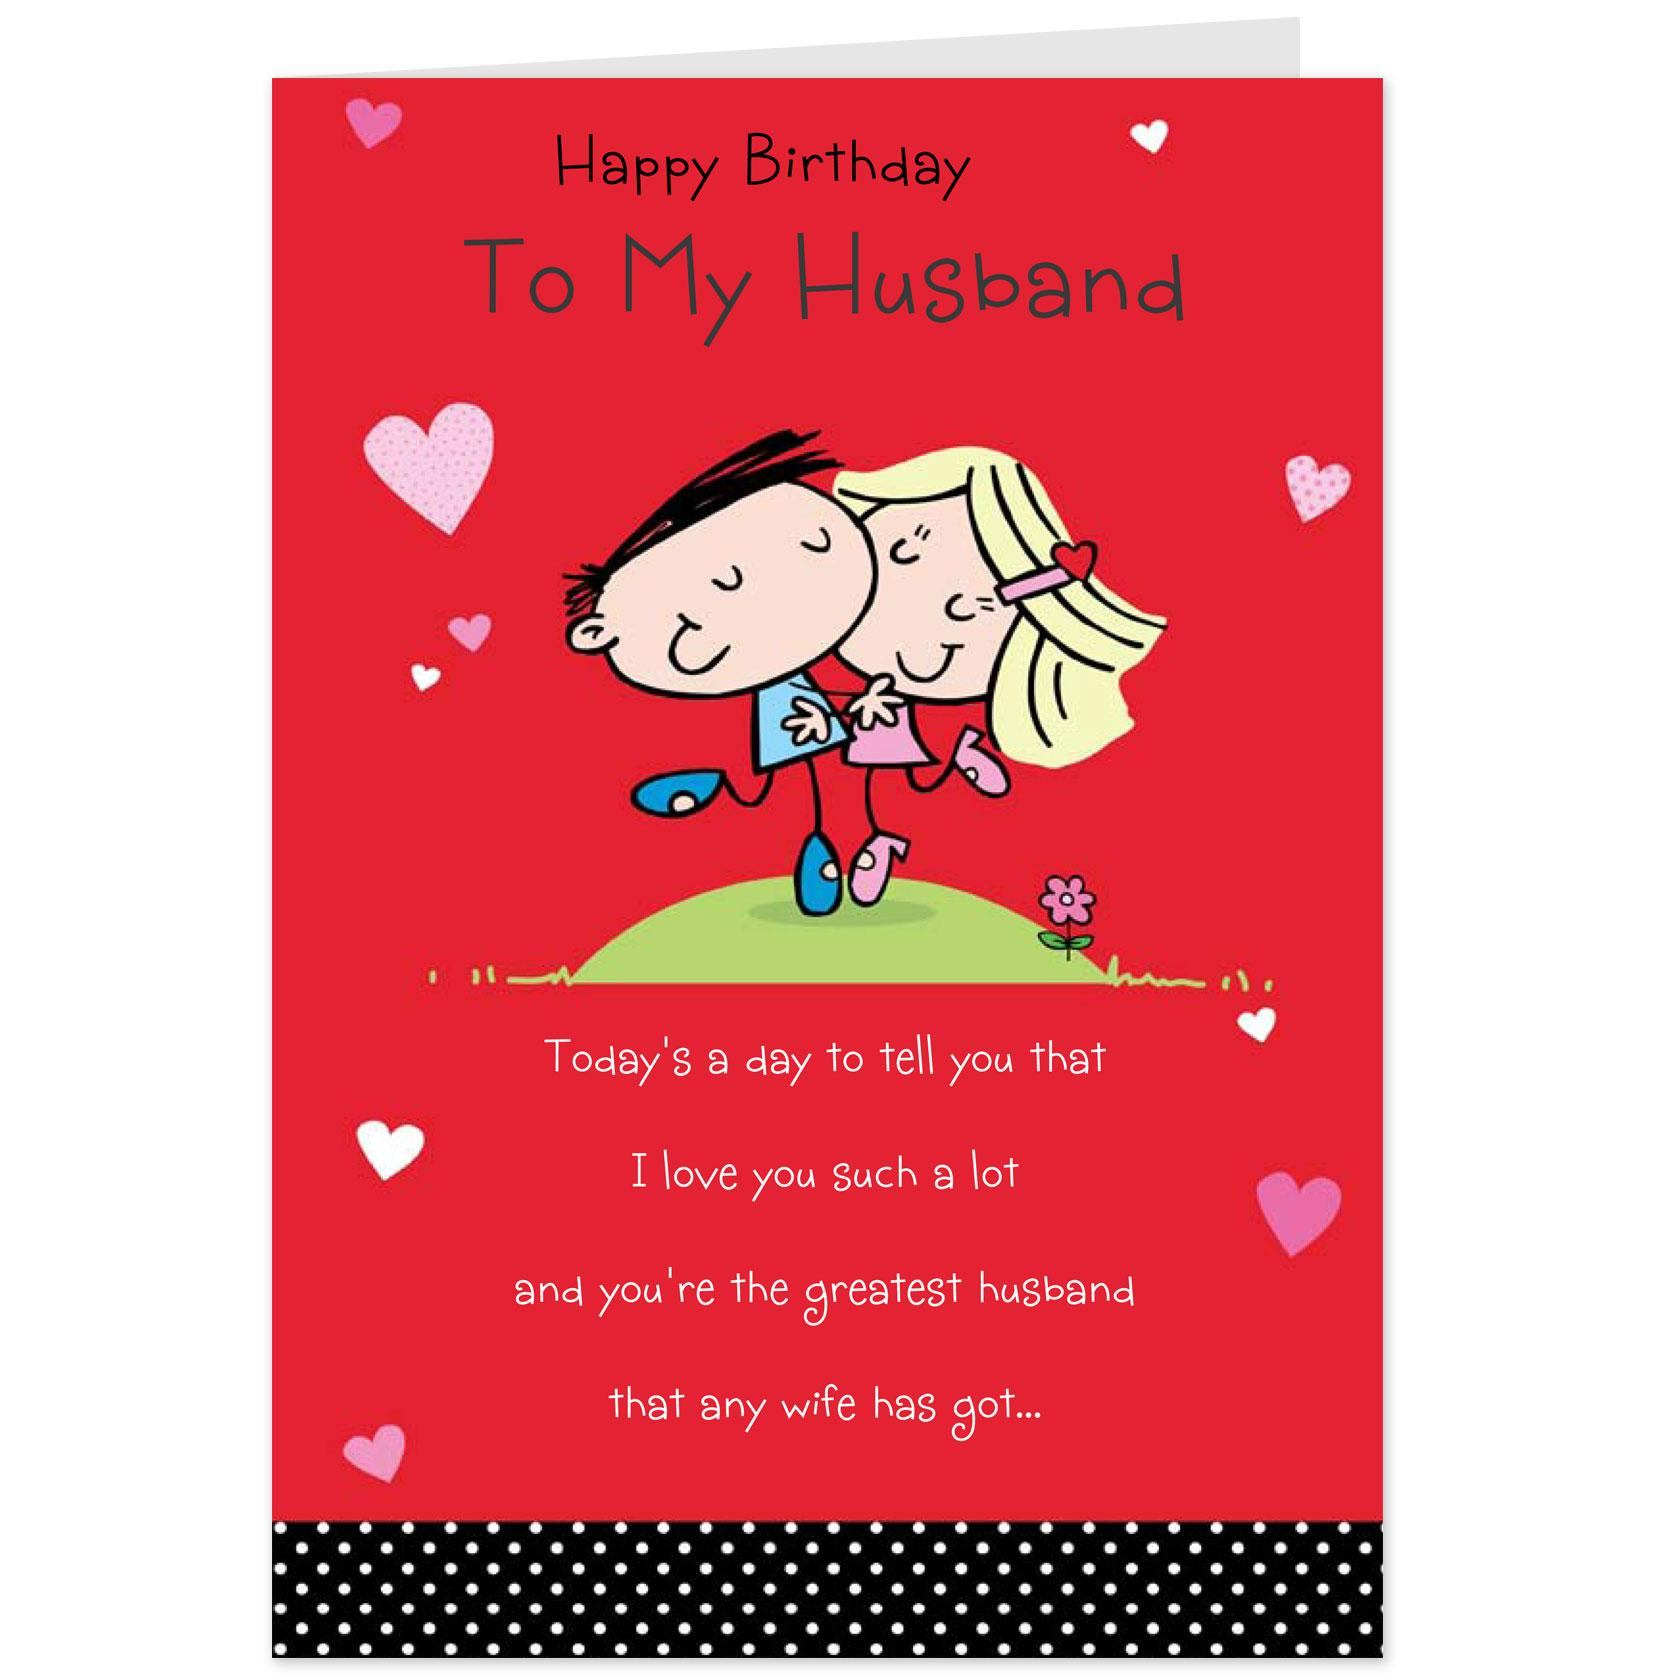 greeting cards for birthday wishes to husband ; romantic-love-cards-for-husband-fabulous-birthday-invitations-card-romantic-birthday-wishes-to-husband-for-of-romantic-love-cards-for-husband